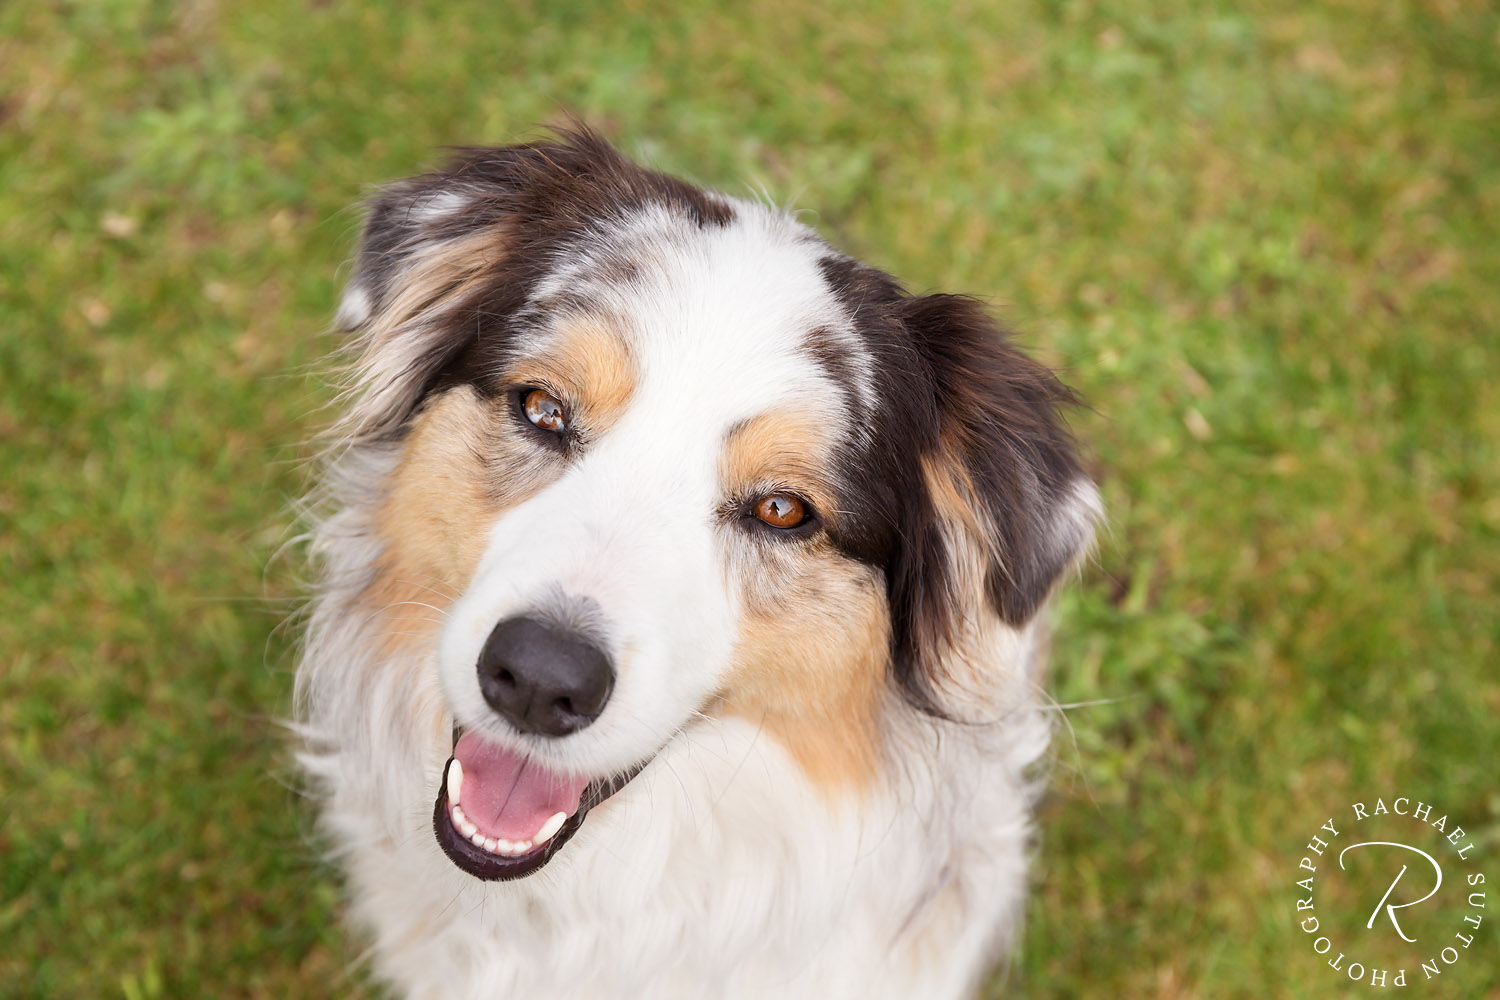 pet photography, Australian Shepherd, dog looking up smiling at camera